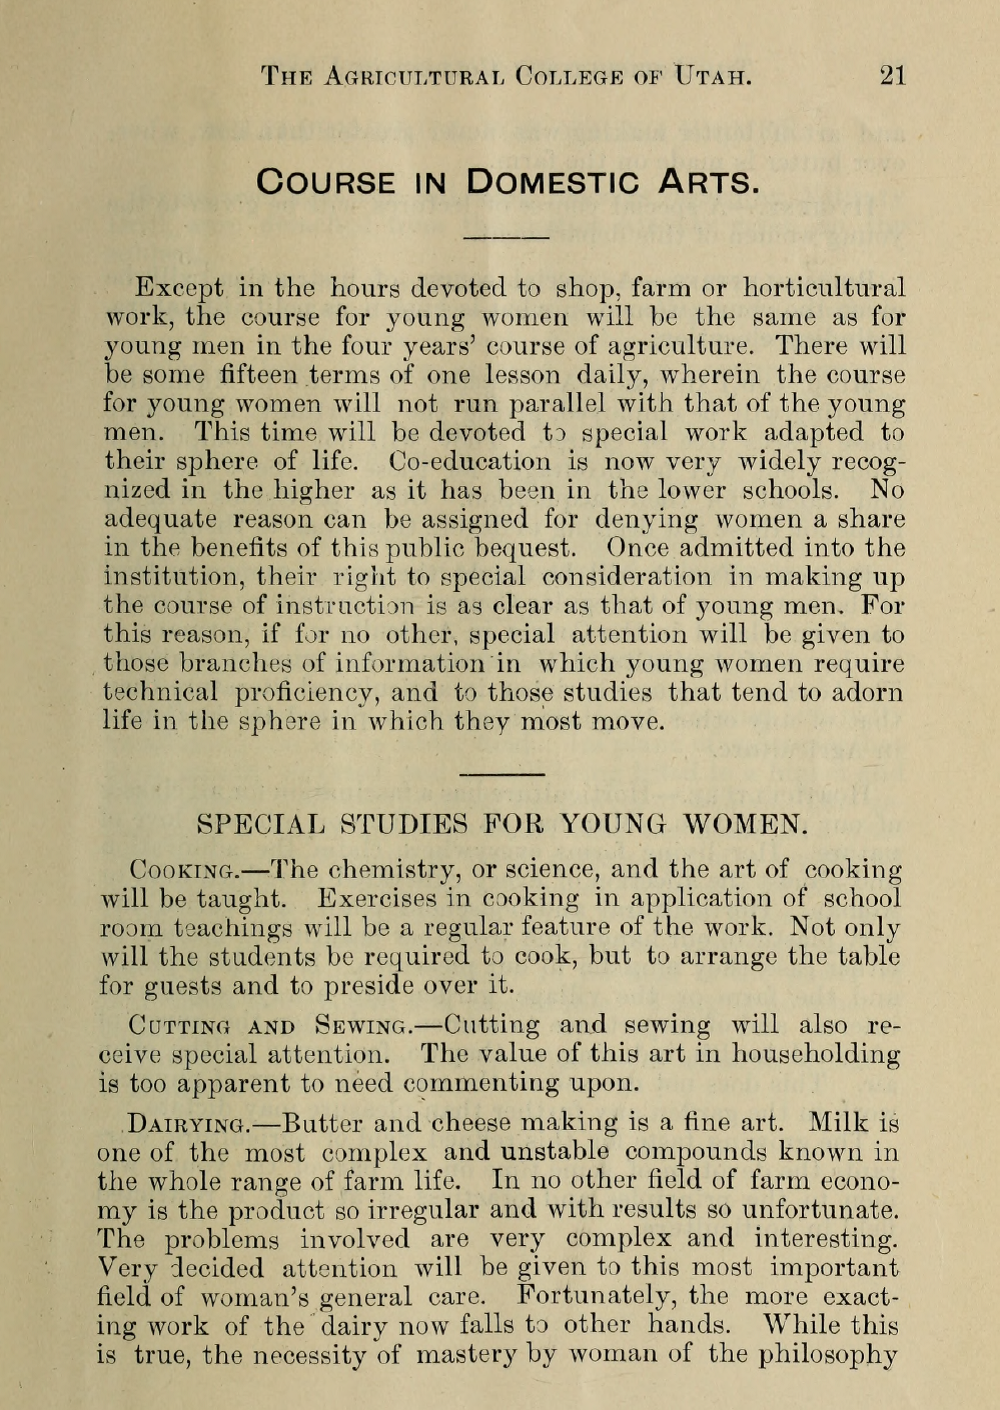 The first of a two-paged excerpt from the Agricultural College of Utah coursebook that outlines classes for young women studying Domestic Arts.